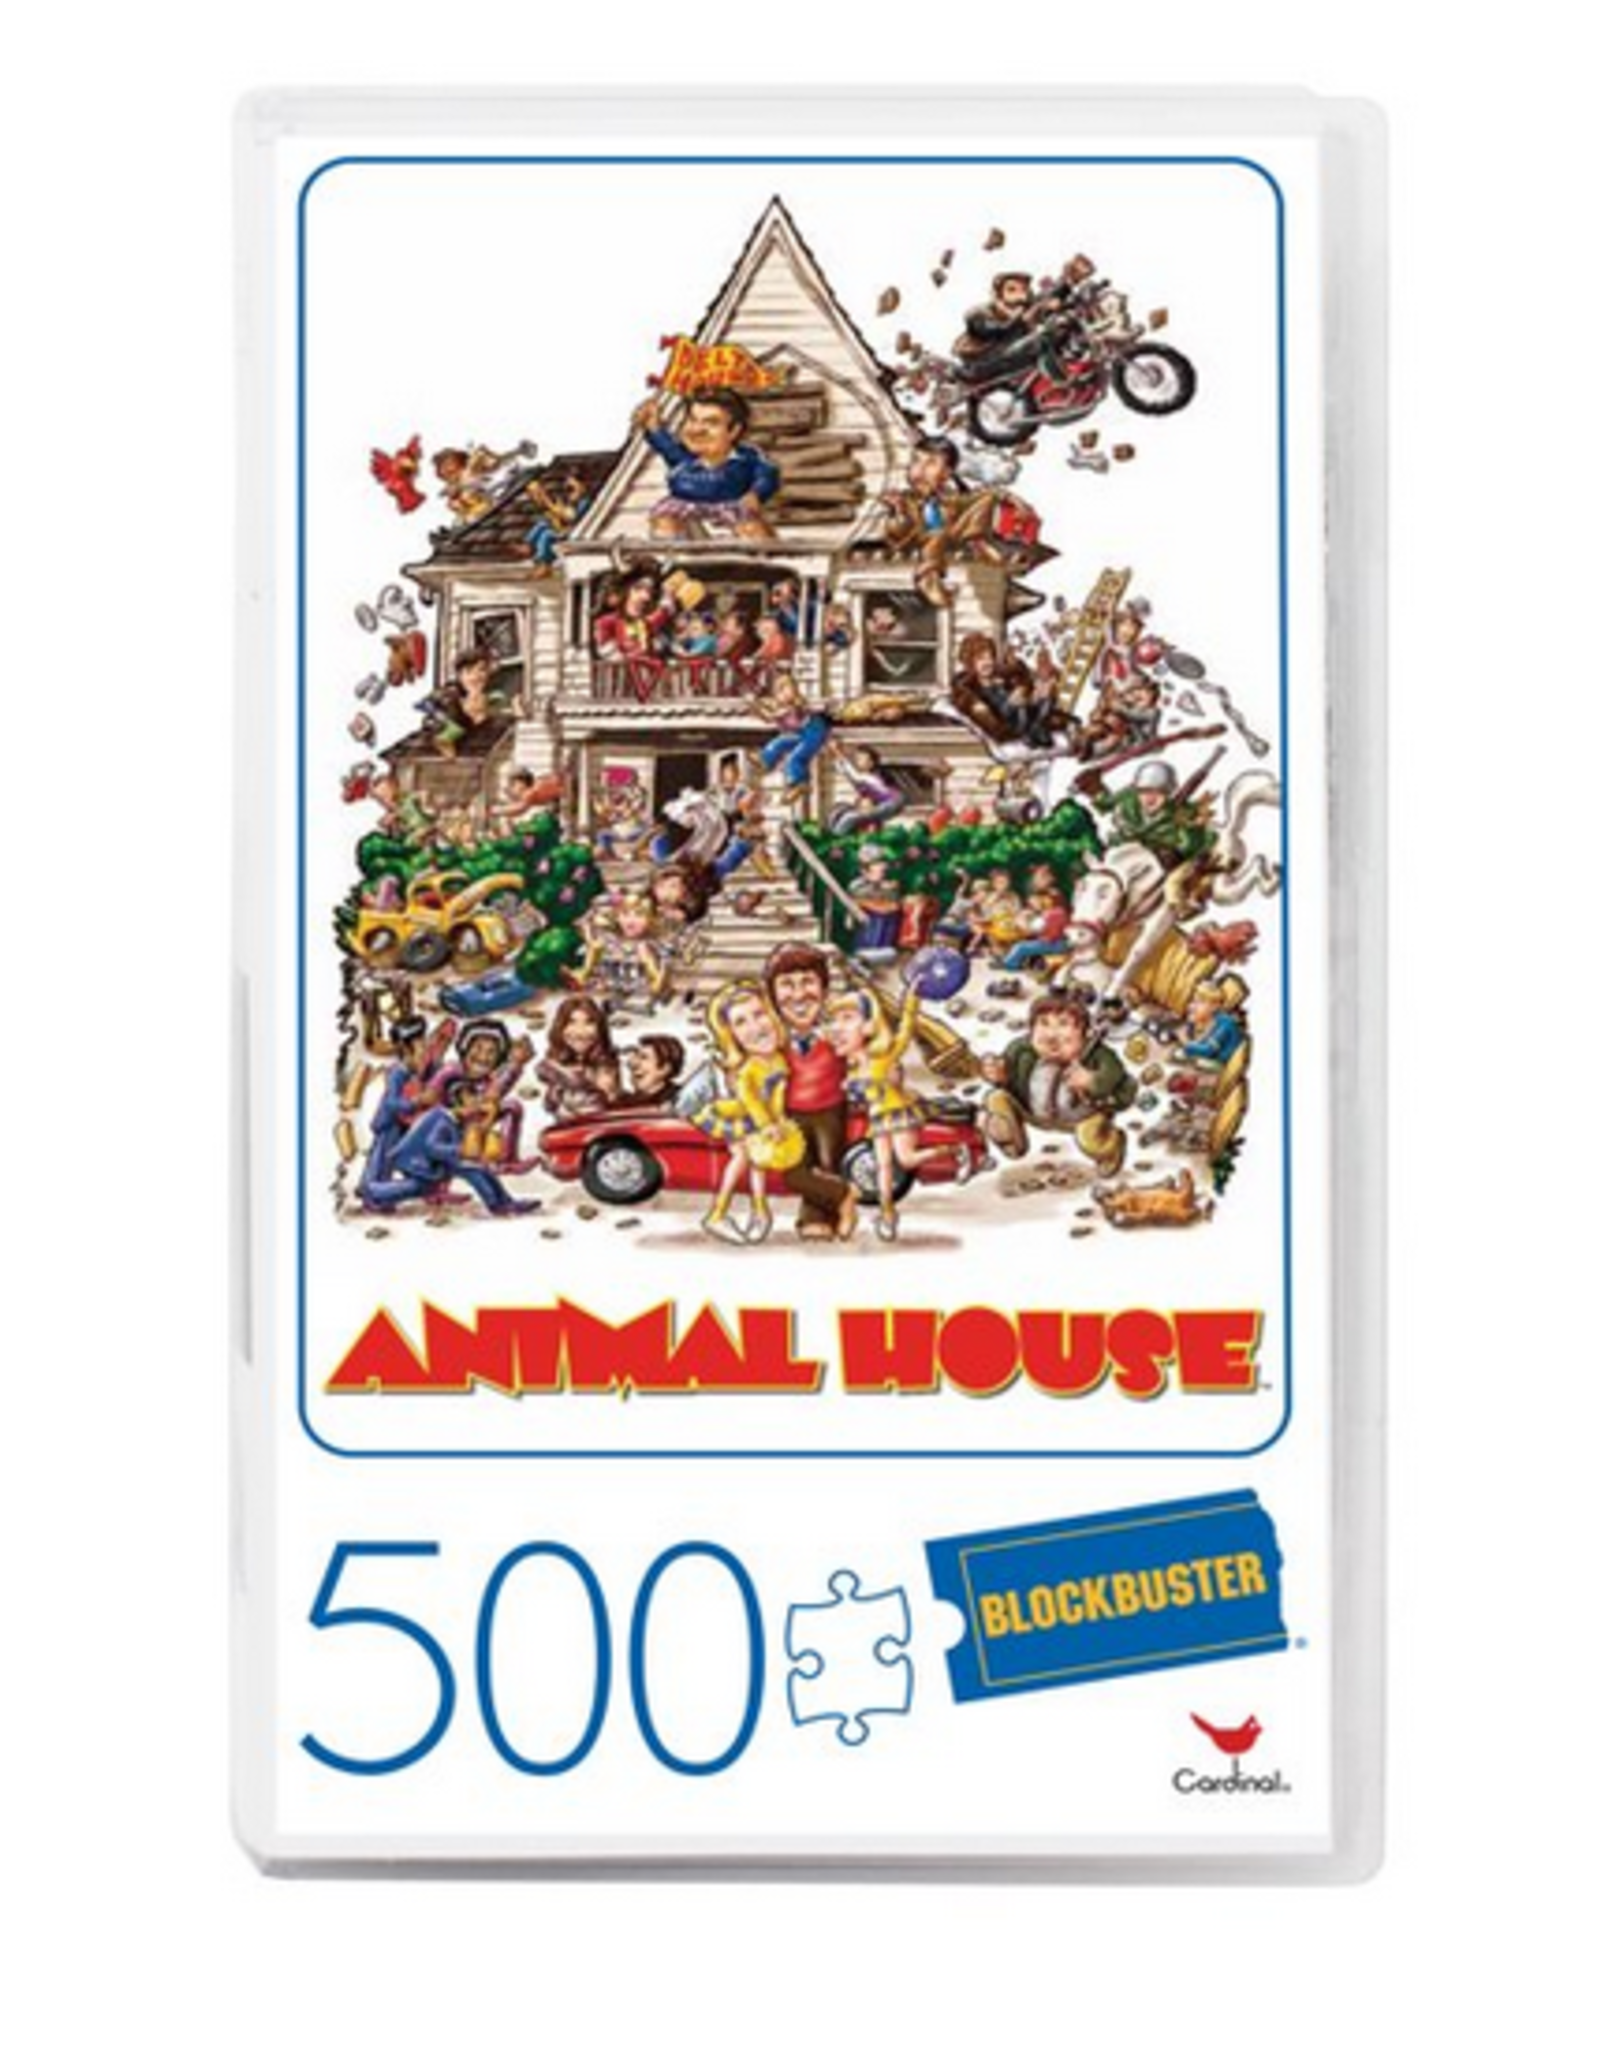 Blockbuster VHS Puzzle 500 Pieces, Animal House